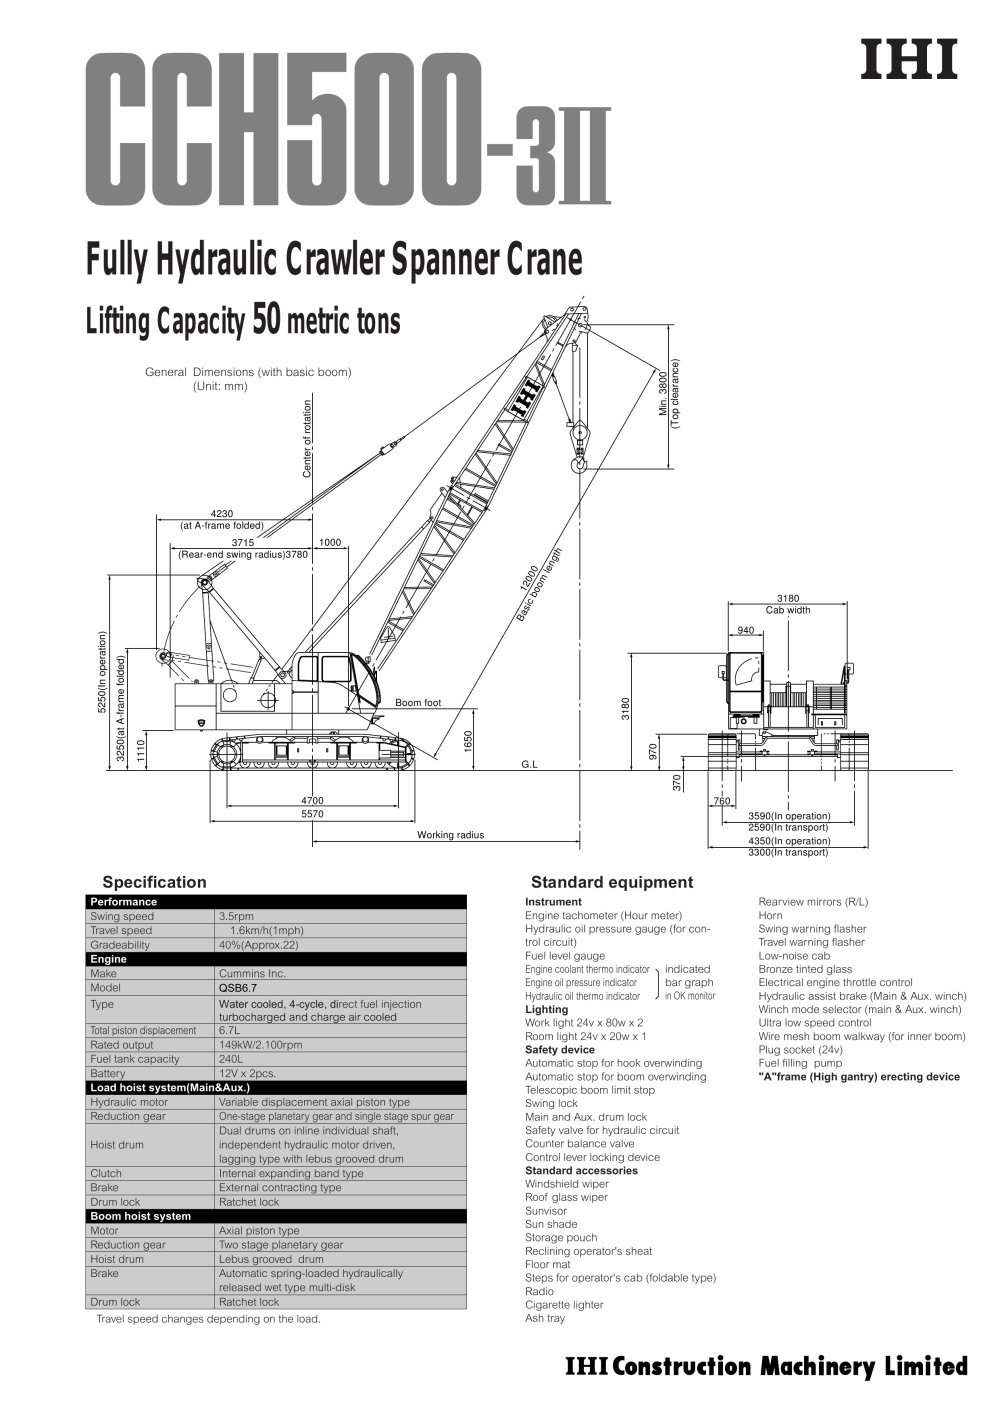 Crawler Crane Cch500 3ii Ihi Construction Machinery Limited Pdf Simple Hydraulic System Diagram Photo Album Diagrams 1 12 Pages